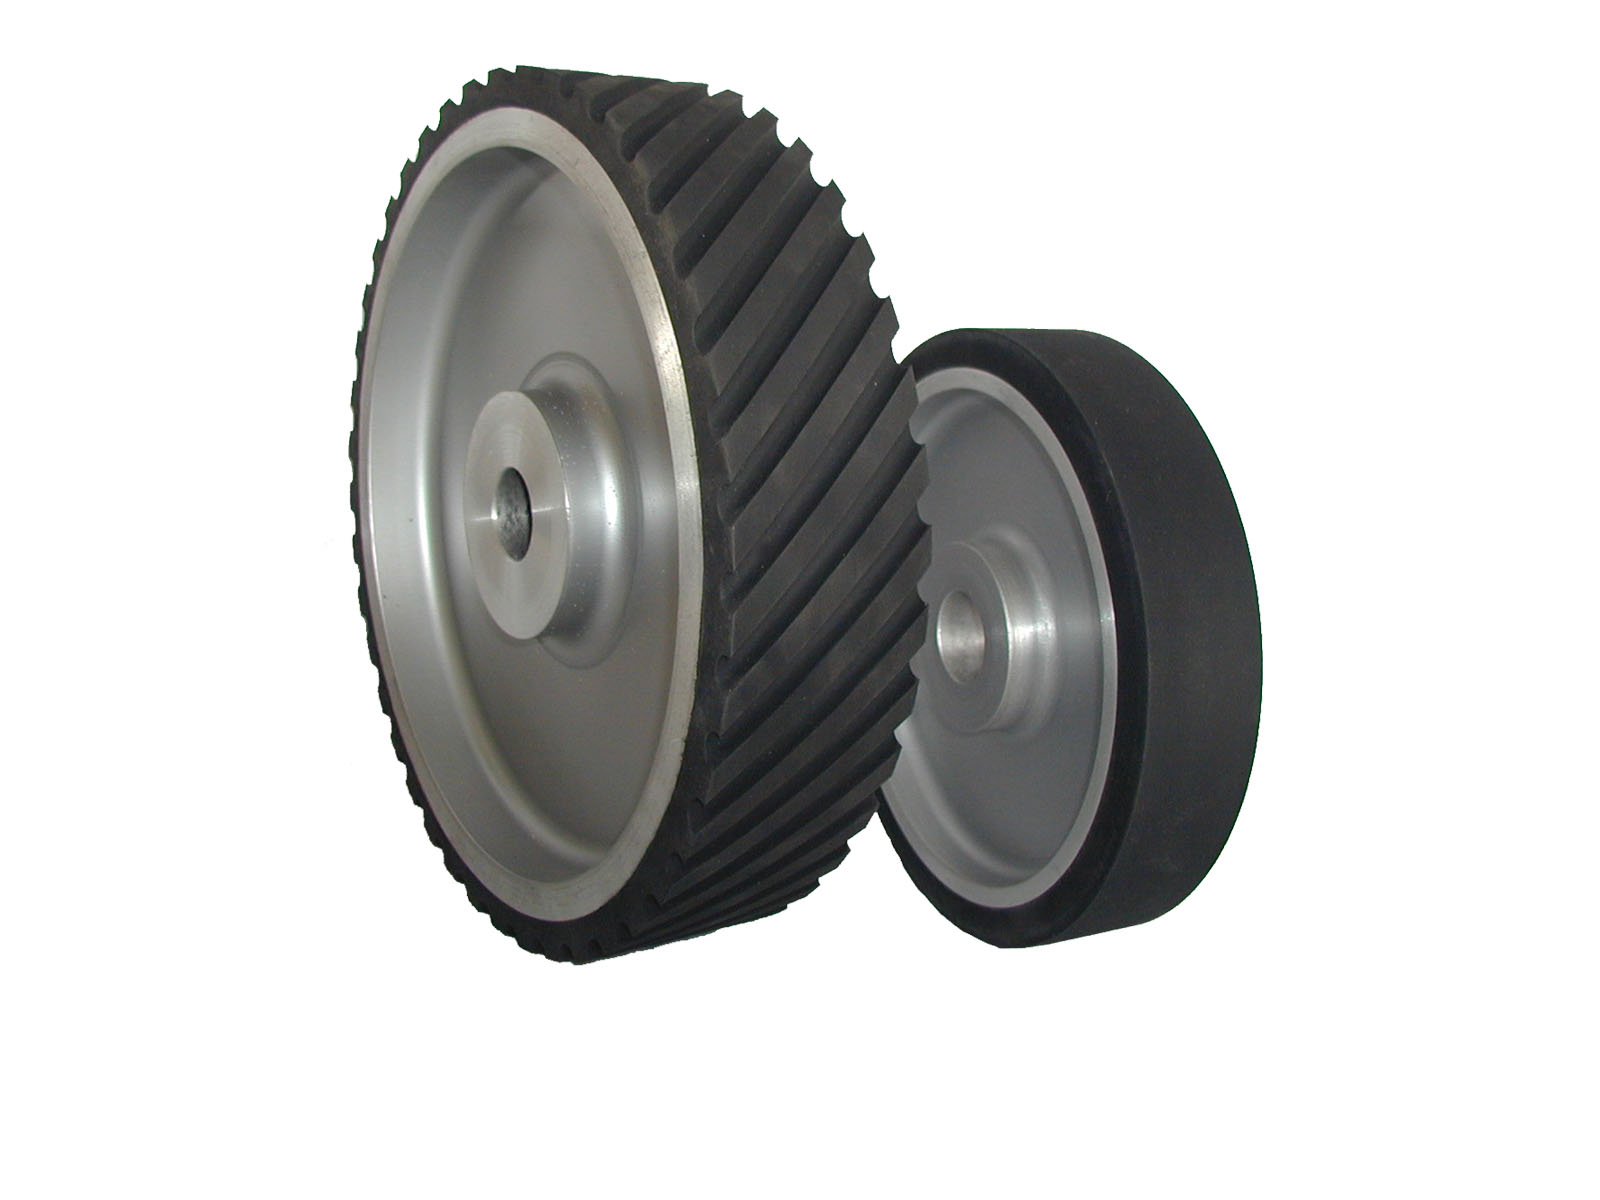 Neoprene Plain Faced 2 Inch Wide Contact Wheel Stephen Bader